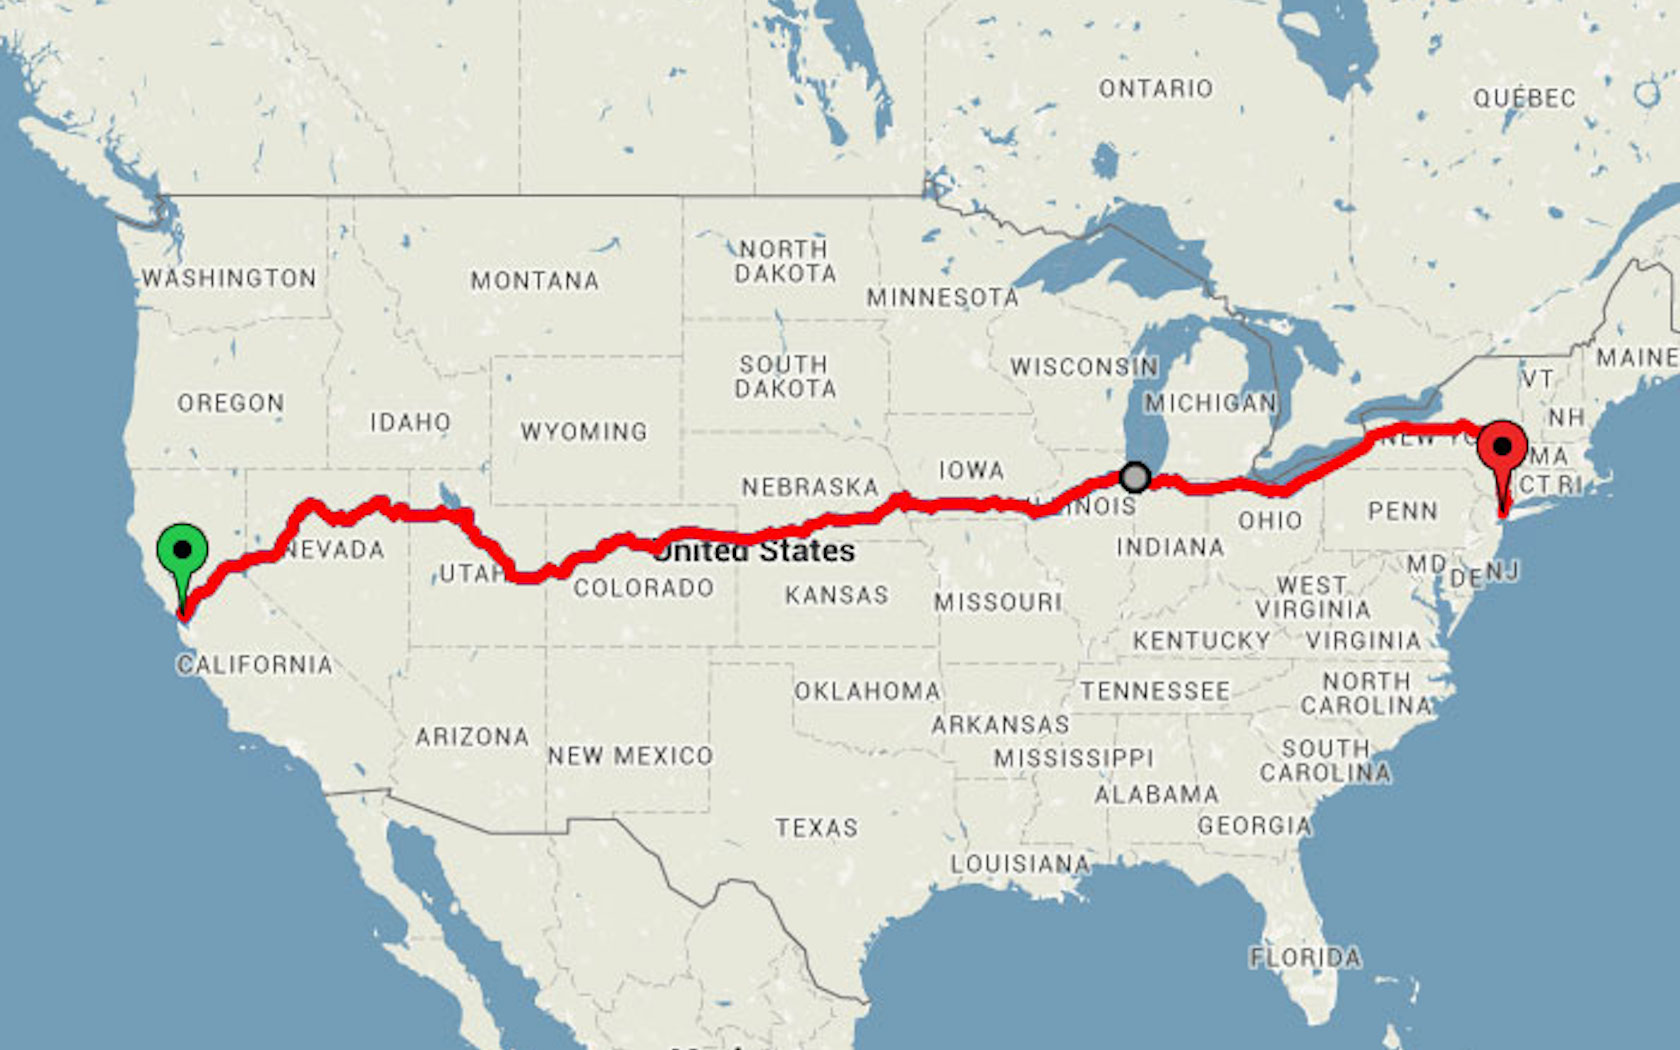 Amtrak Train Takes You From California to New York For Cheap on